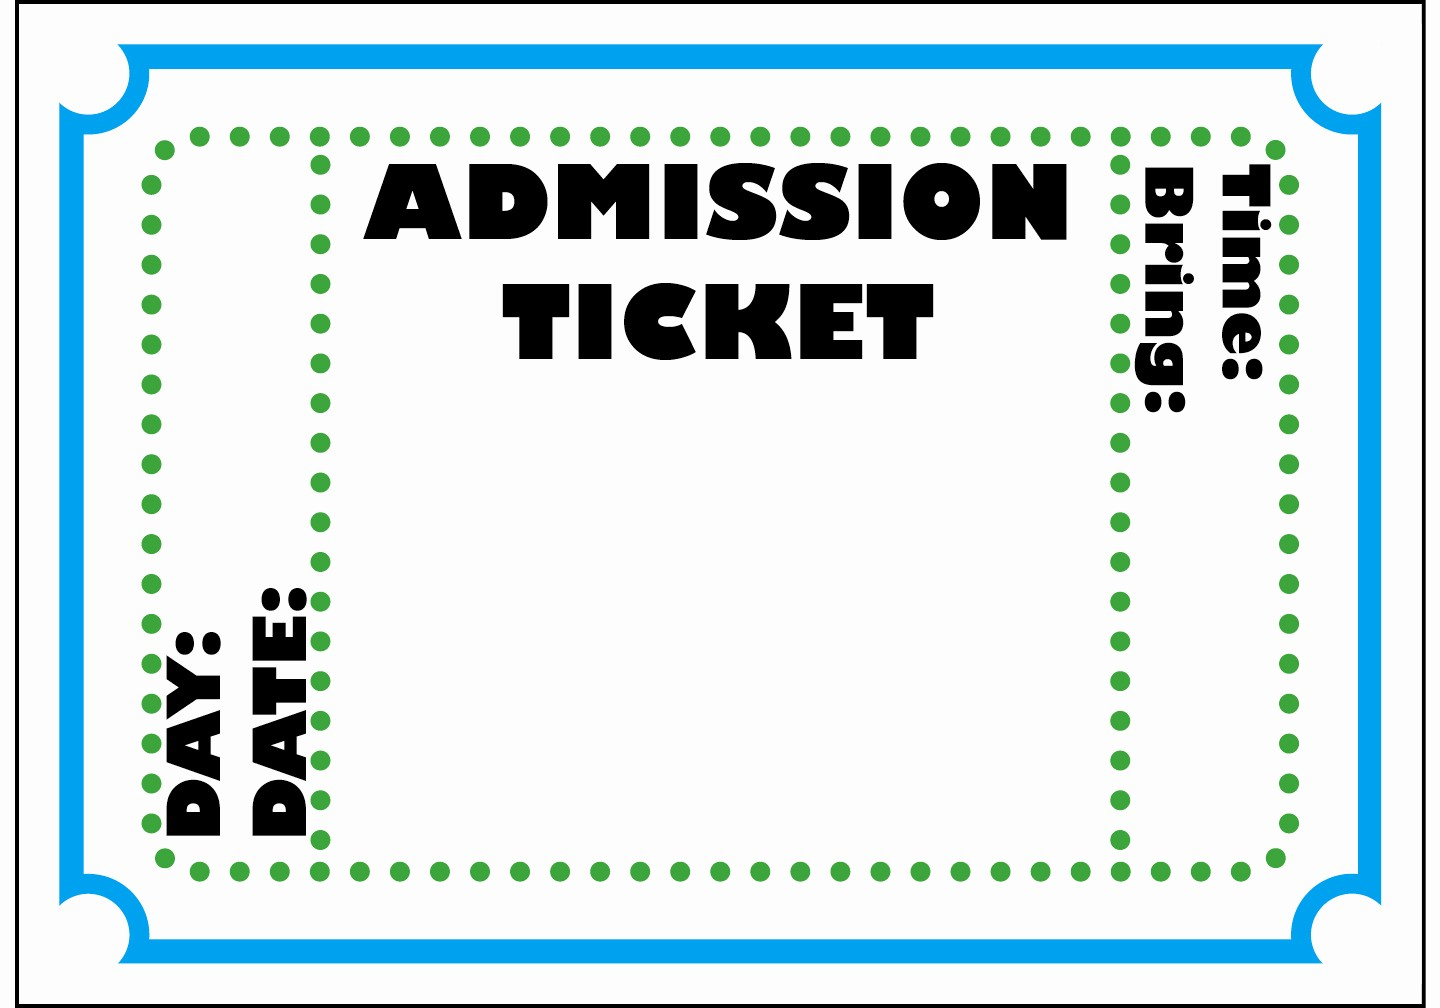 Free Printable Admission Ticket Template Lovely Free Printable Admit E Ticket Template Clipart Best